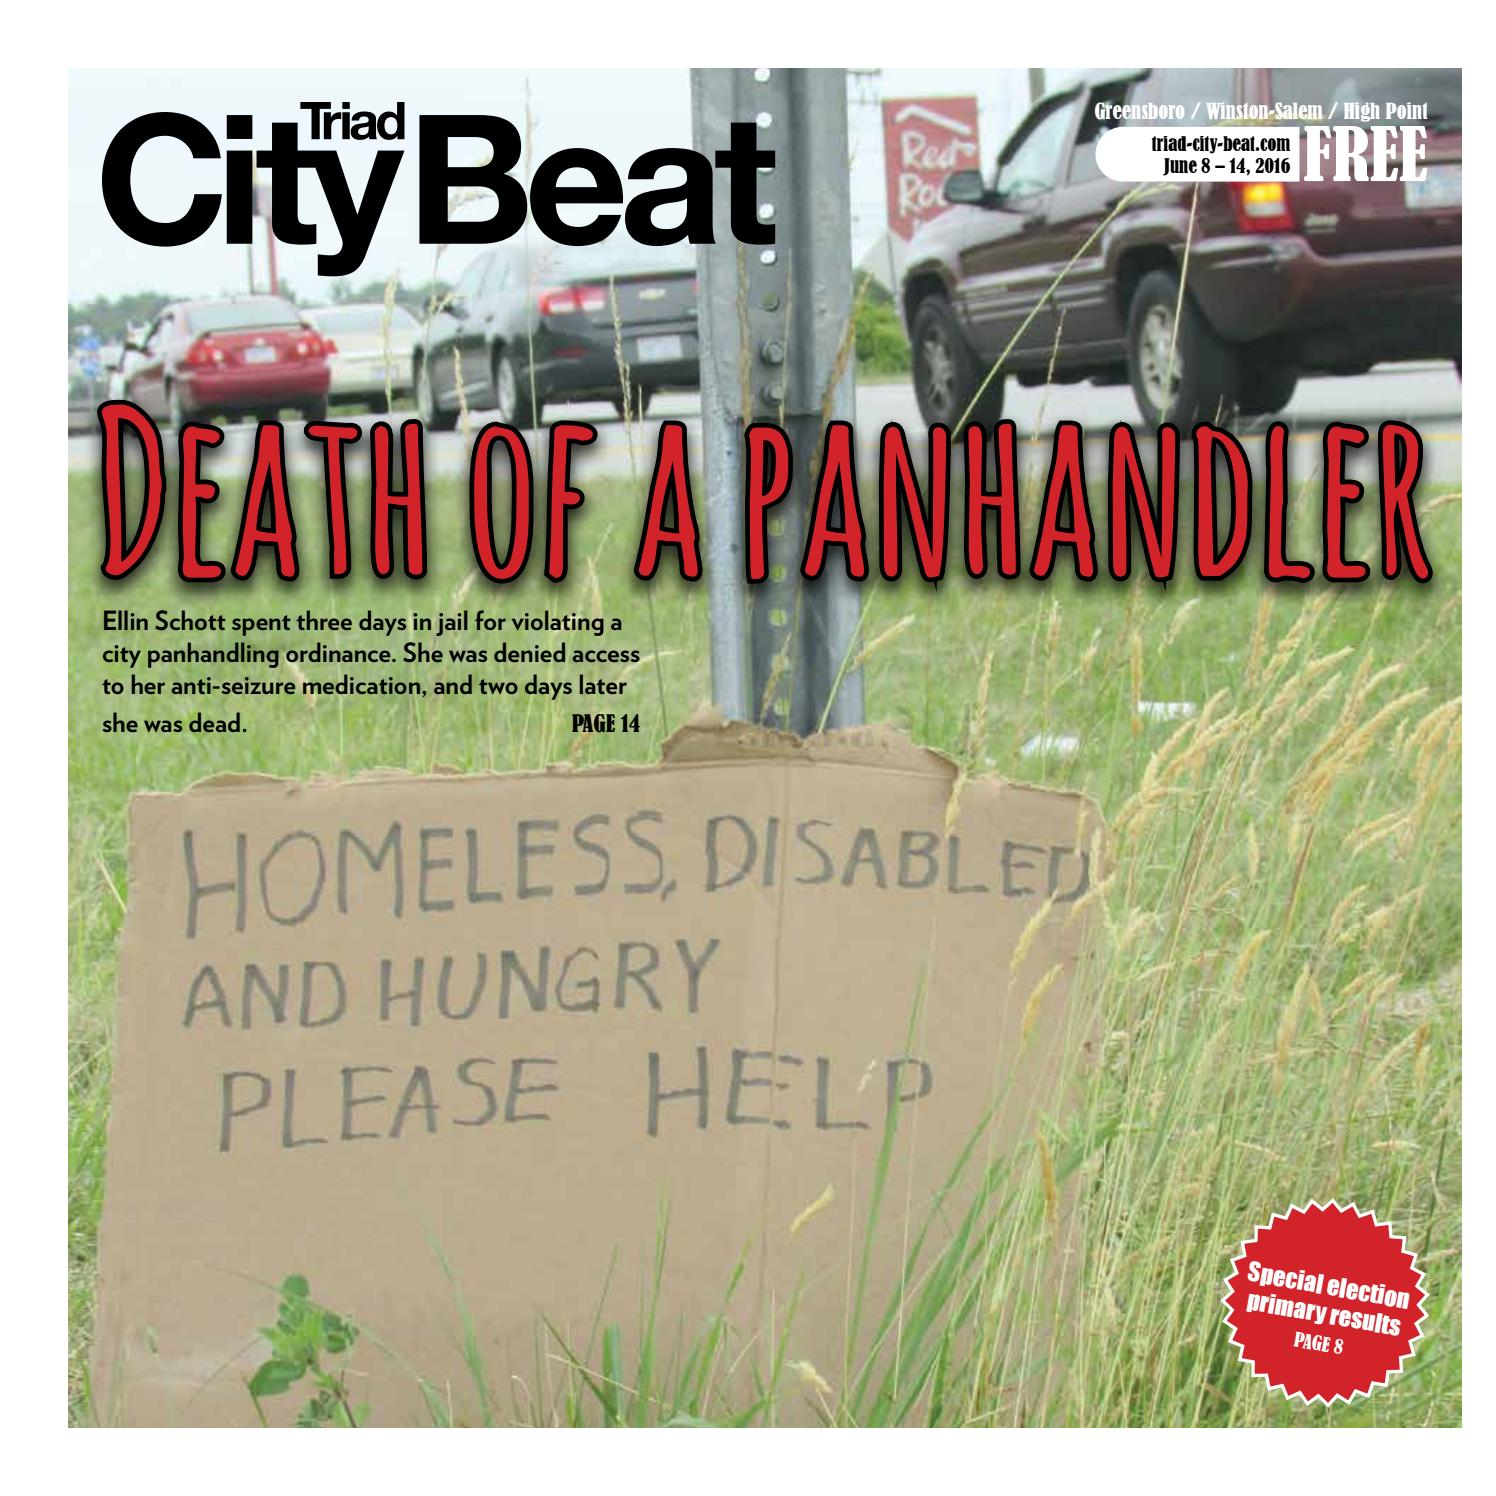 TCB June 8, 2016 — Death of a panhandler by Triad City Beat